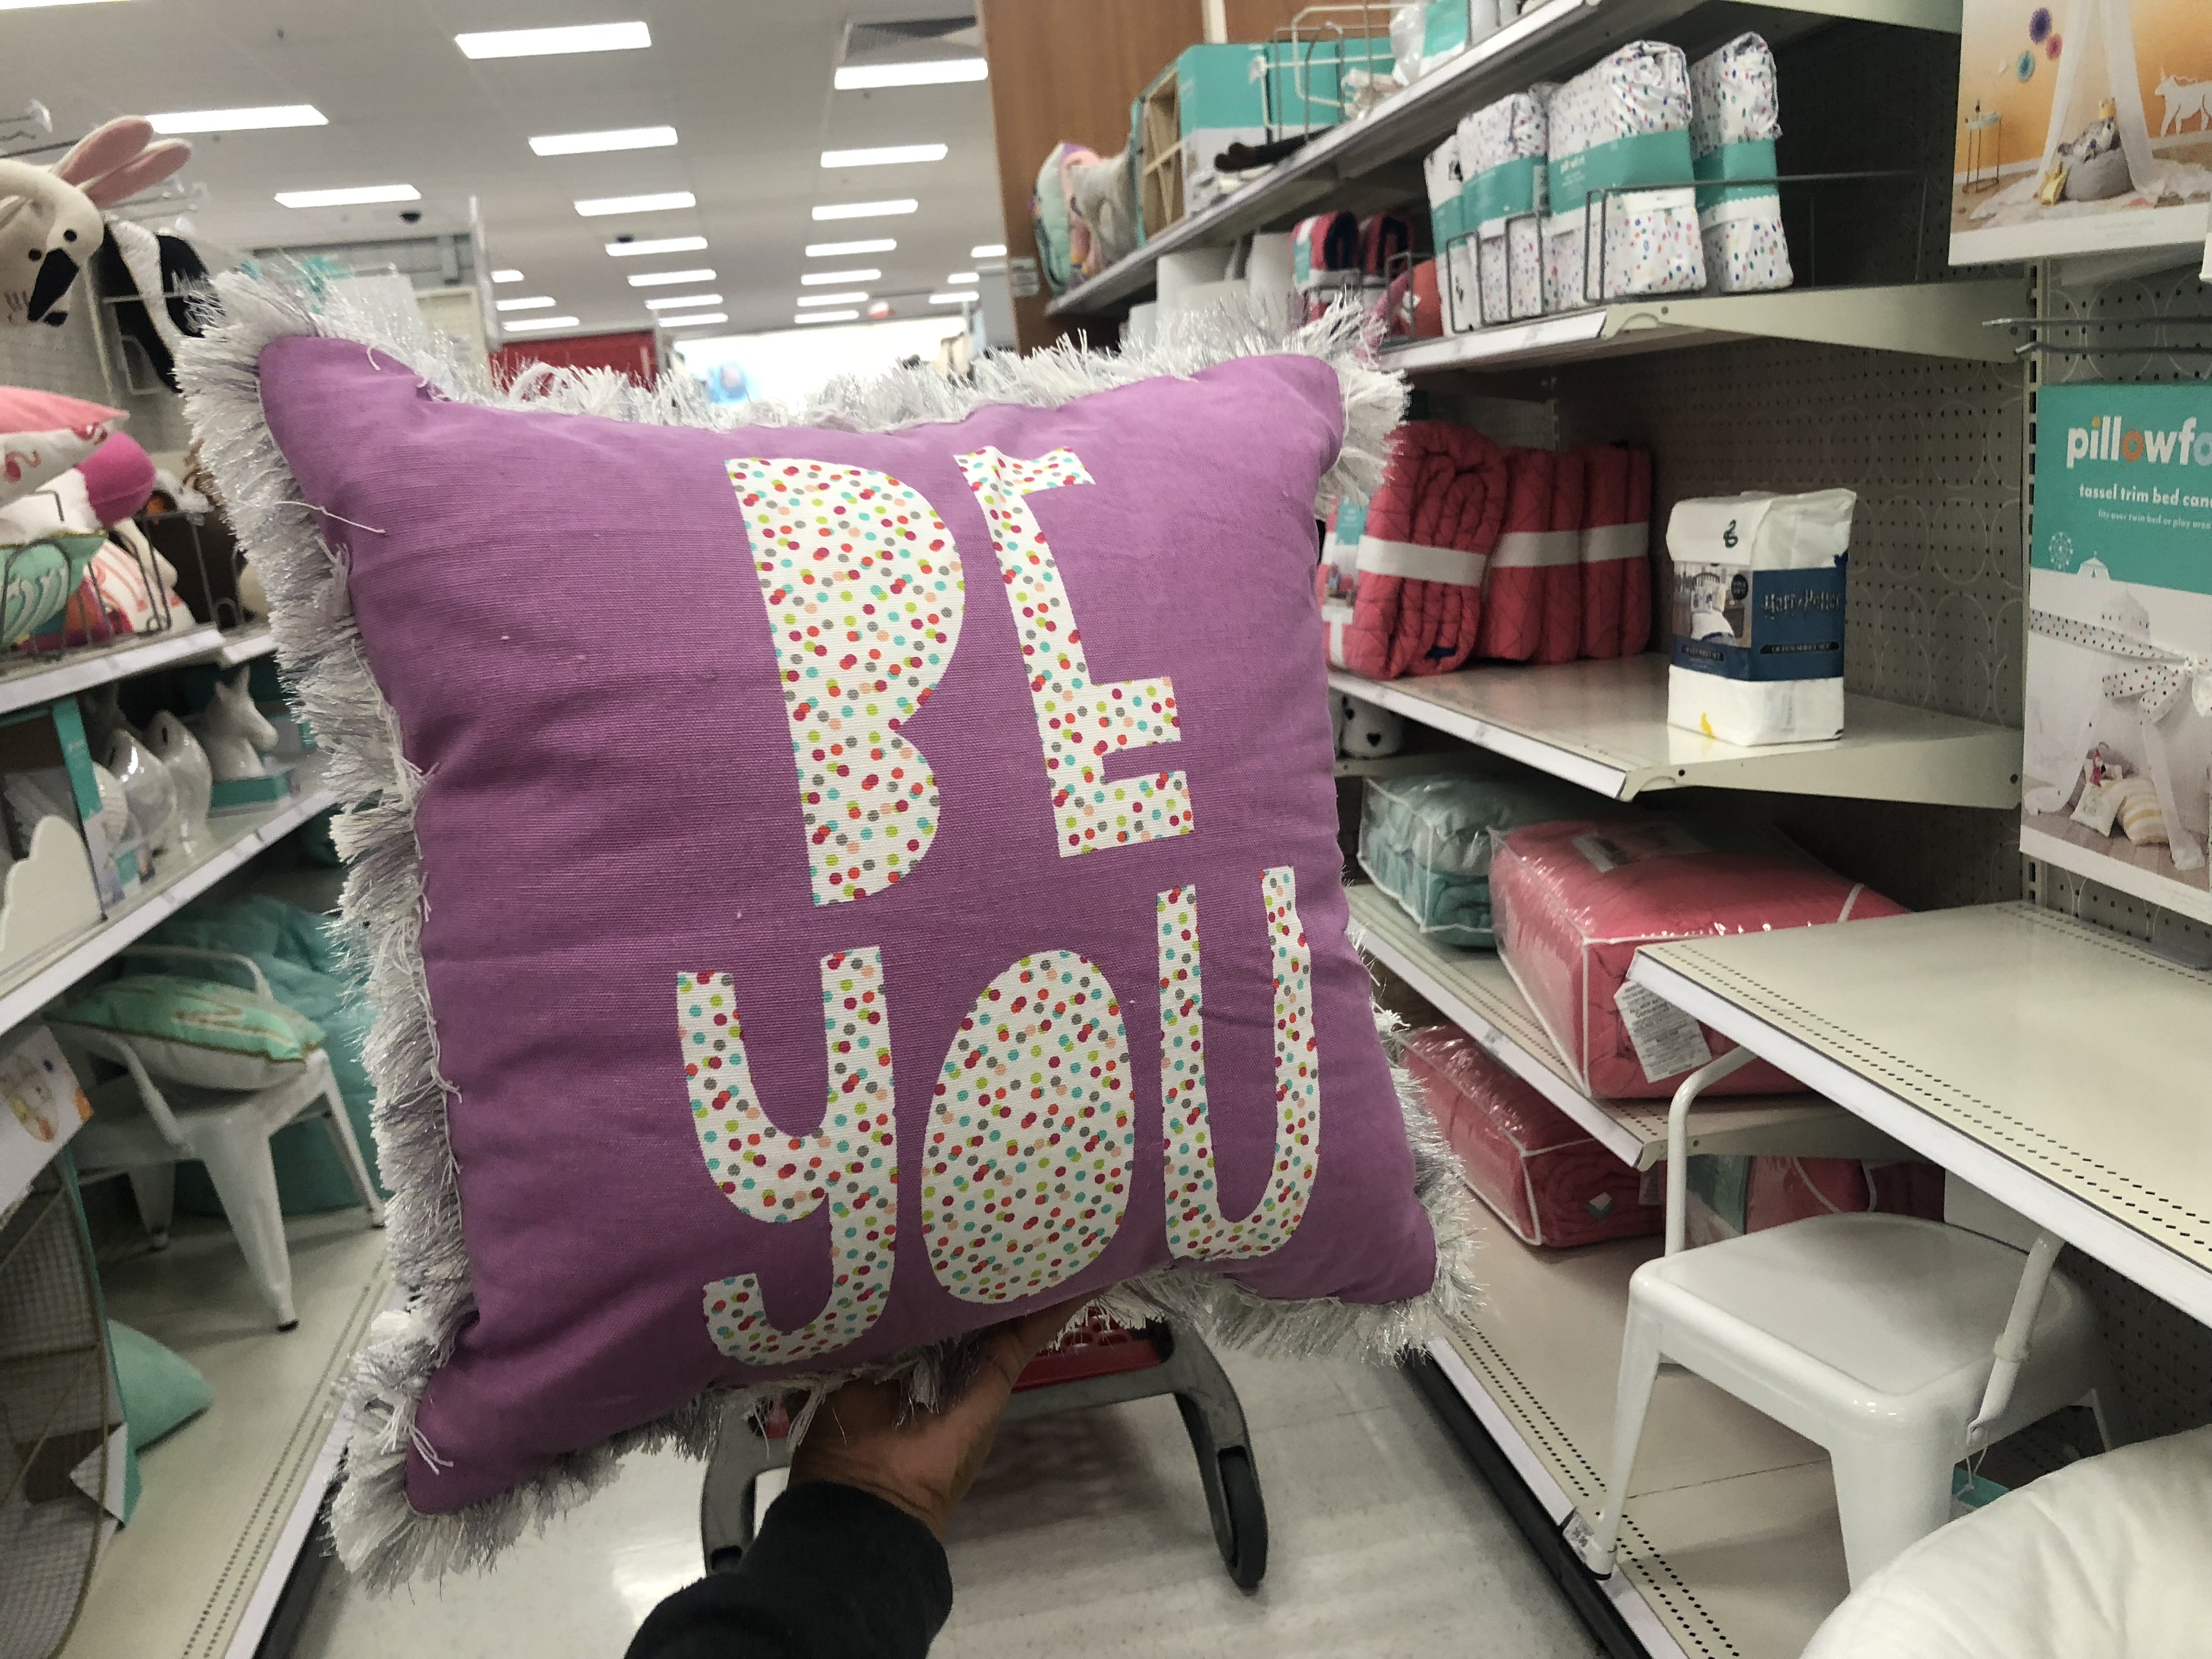 Pillows On Sale At Target 20 Off Kids Home Items At Target Adorable Pillows Blankets